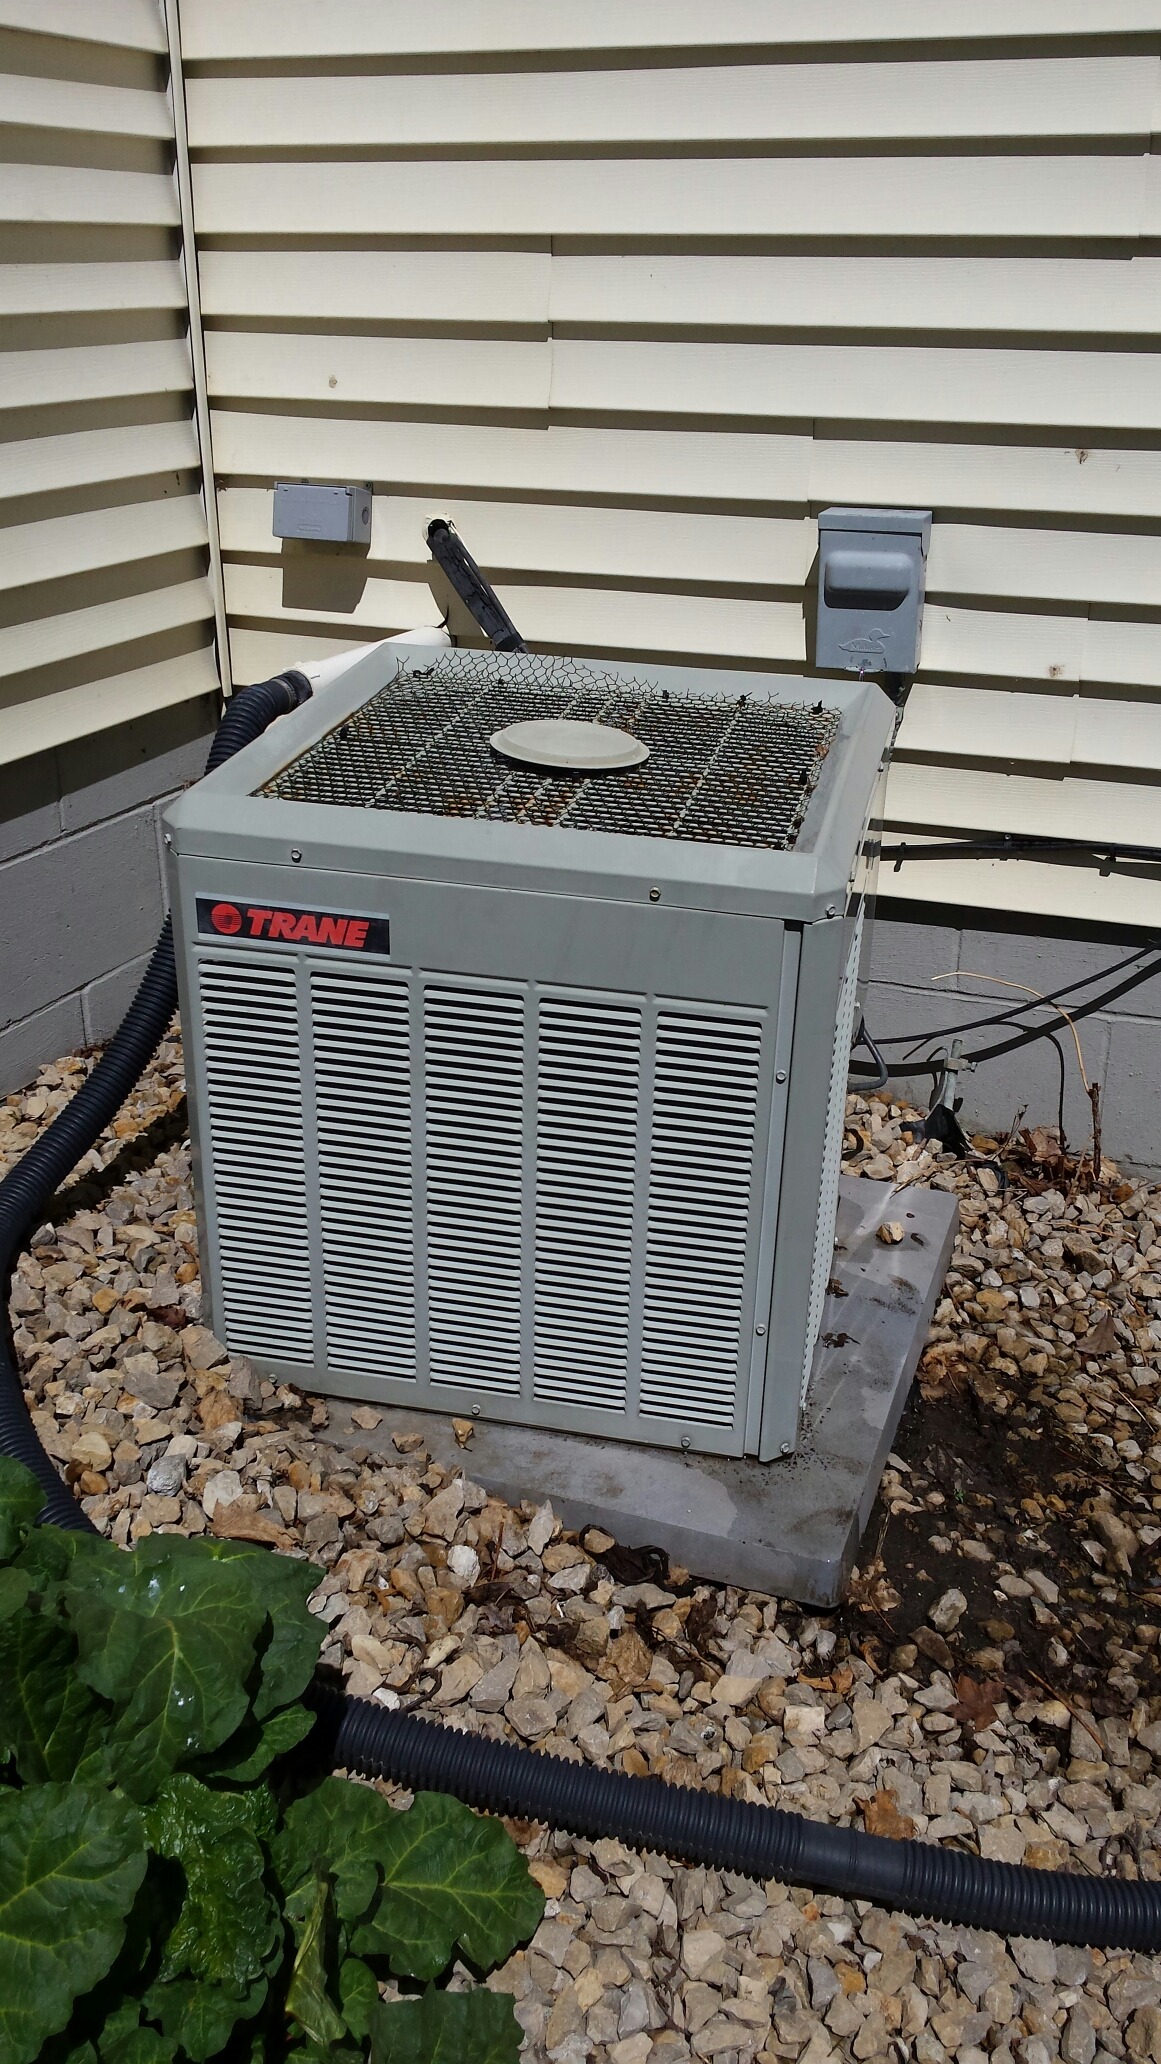 Furnace Air Conditioning Repair In Rockford Mn Have A Trane Xv90 With Ac Trying To Install Honeywell Tune Up On